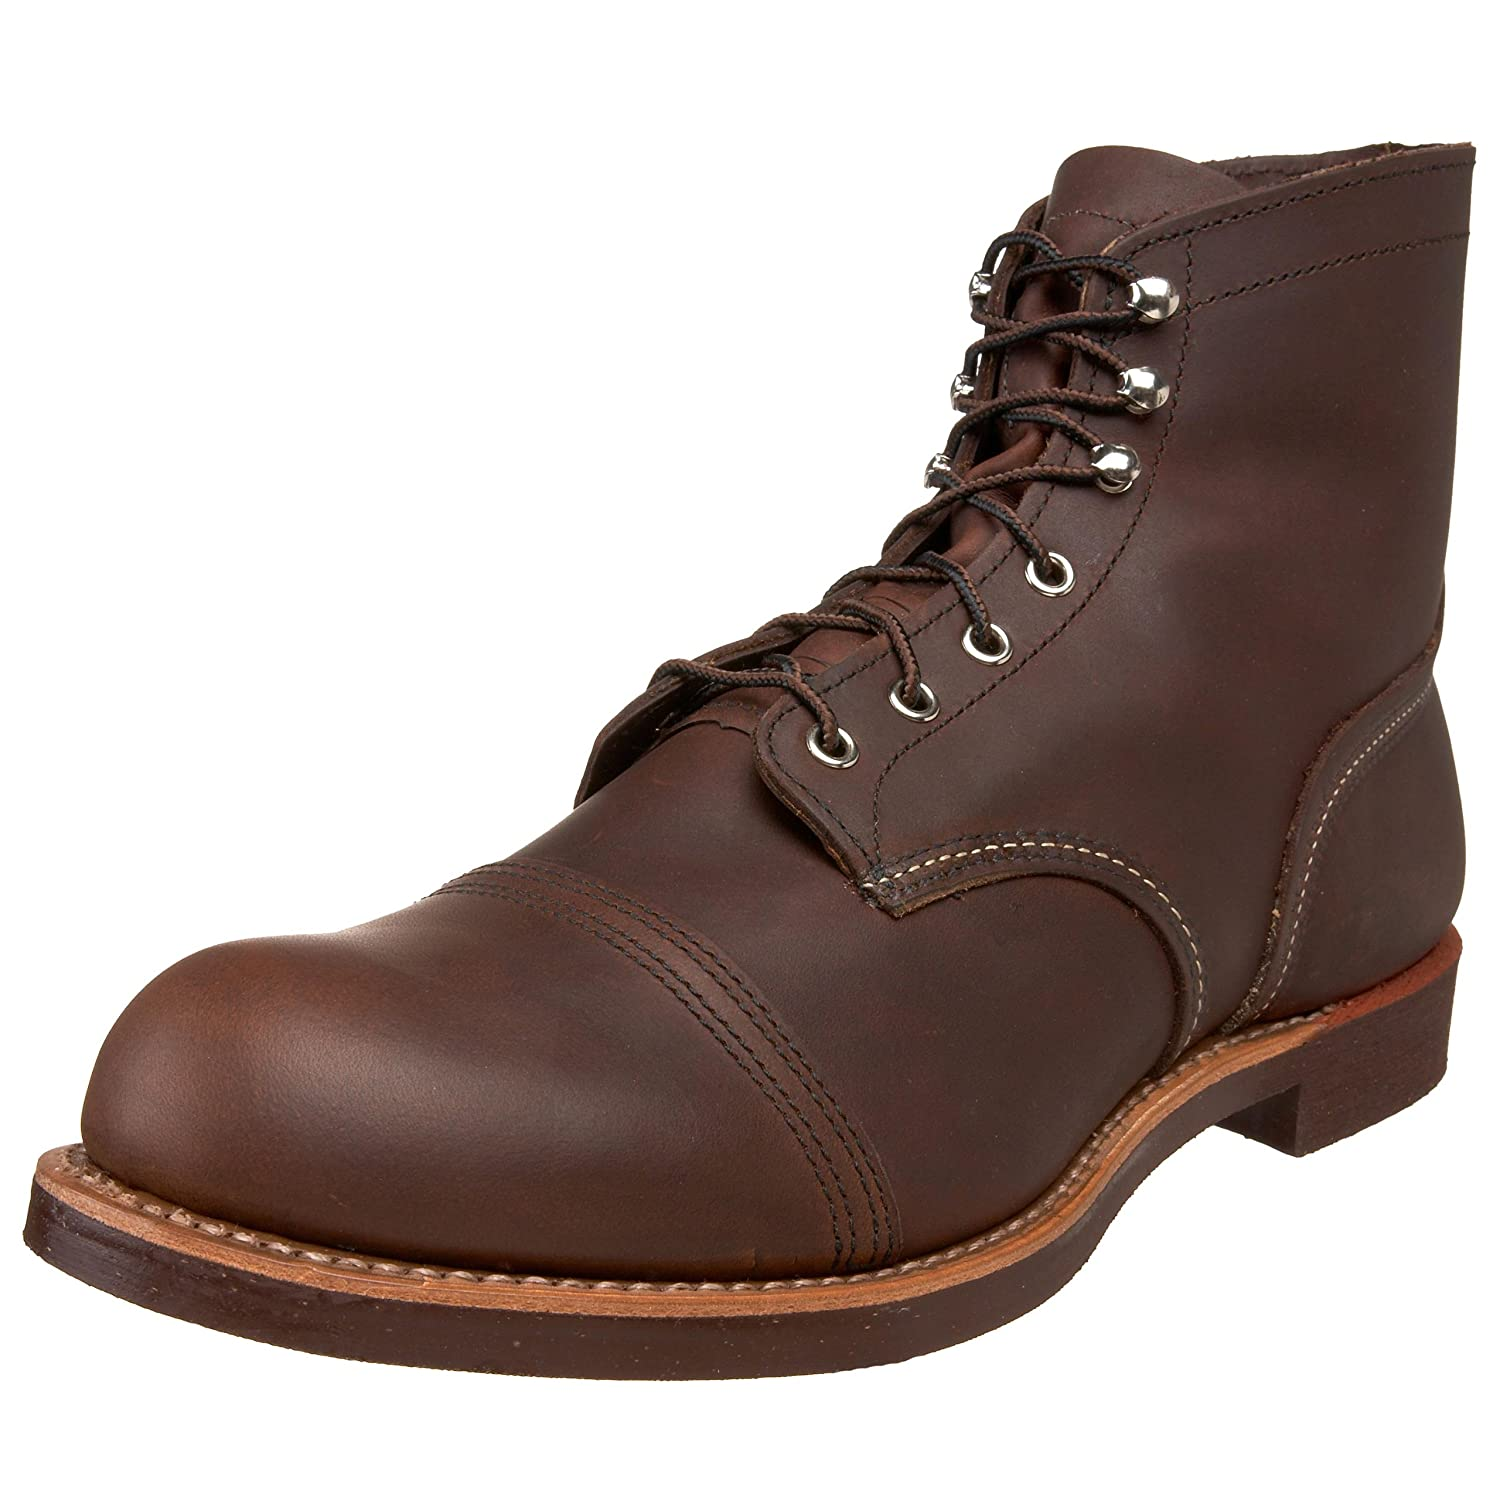 Stacy Adams Men's Victorian Boots and Shoes Red Wing Heritage Iron Ranger 6-Inch Boot $239.96 AT vintagedancer.com